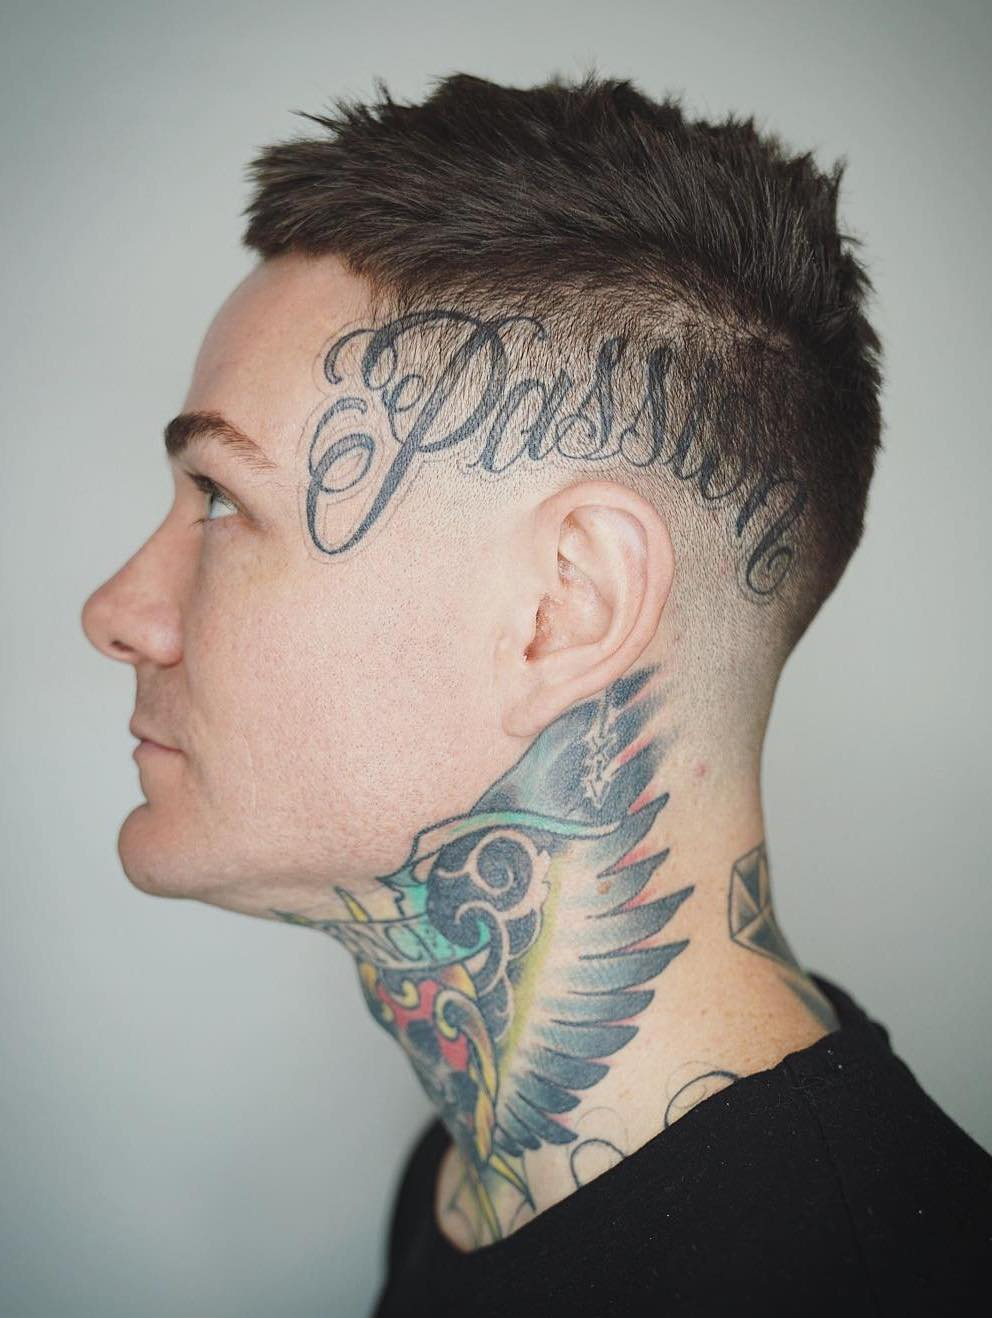 Chill Toss Top with Skin Fade